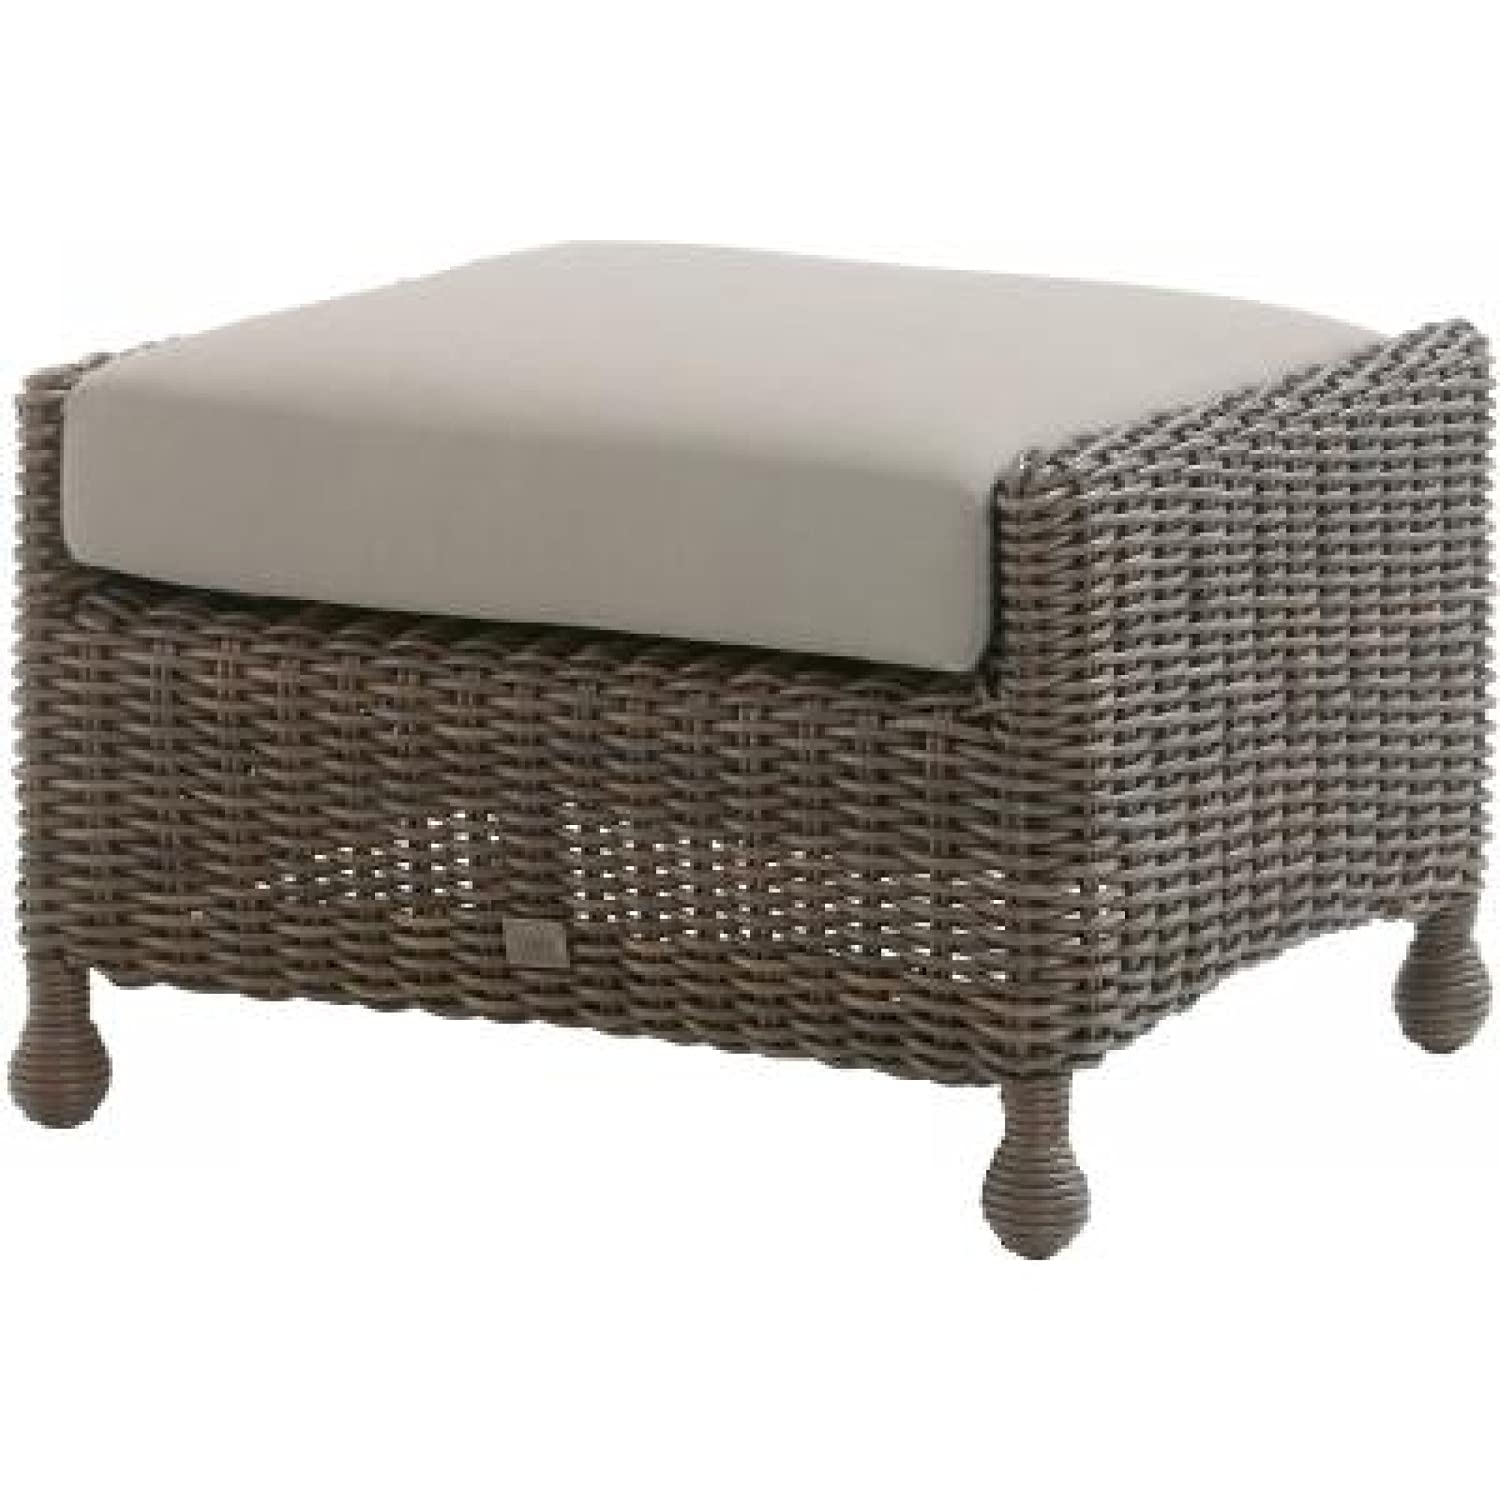 4Seasons Outdoor Madoera Fußhocker Footstool Polyrattan Colonial inkl. Kissen